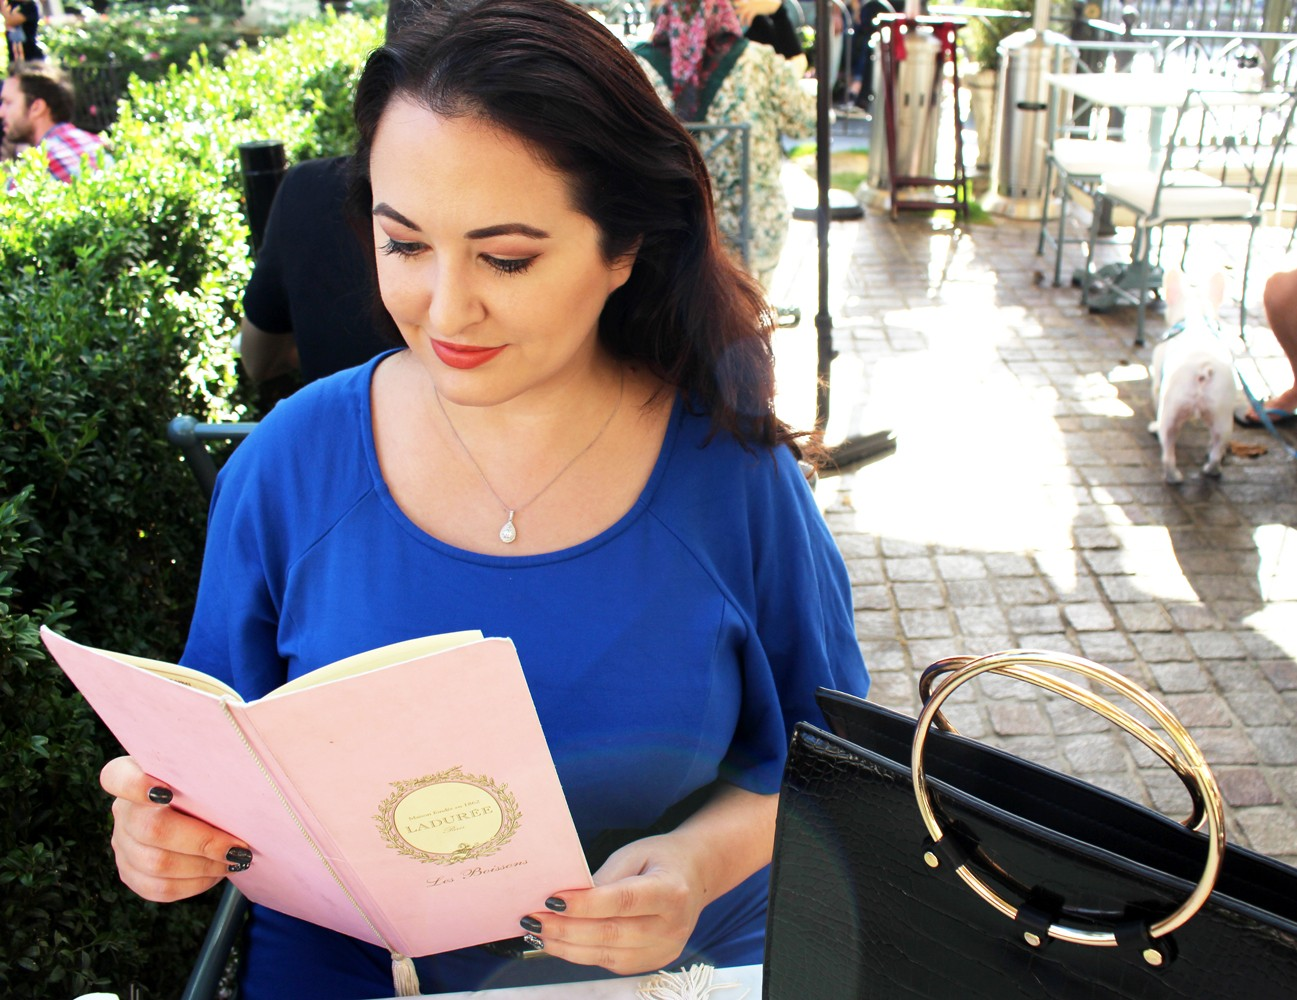 Date at Laduree at the Grove Los Angeles